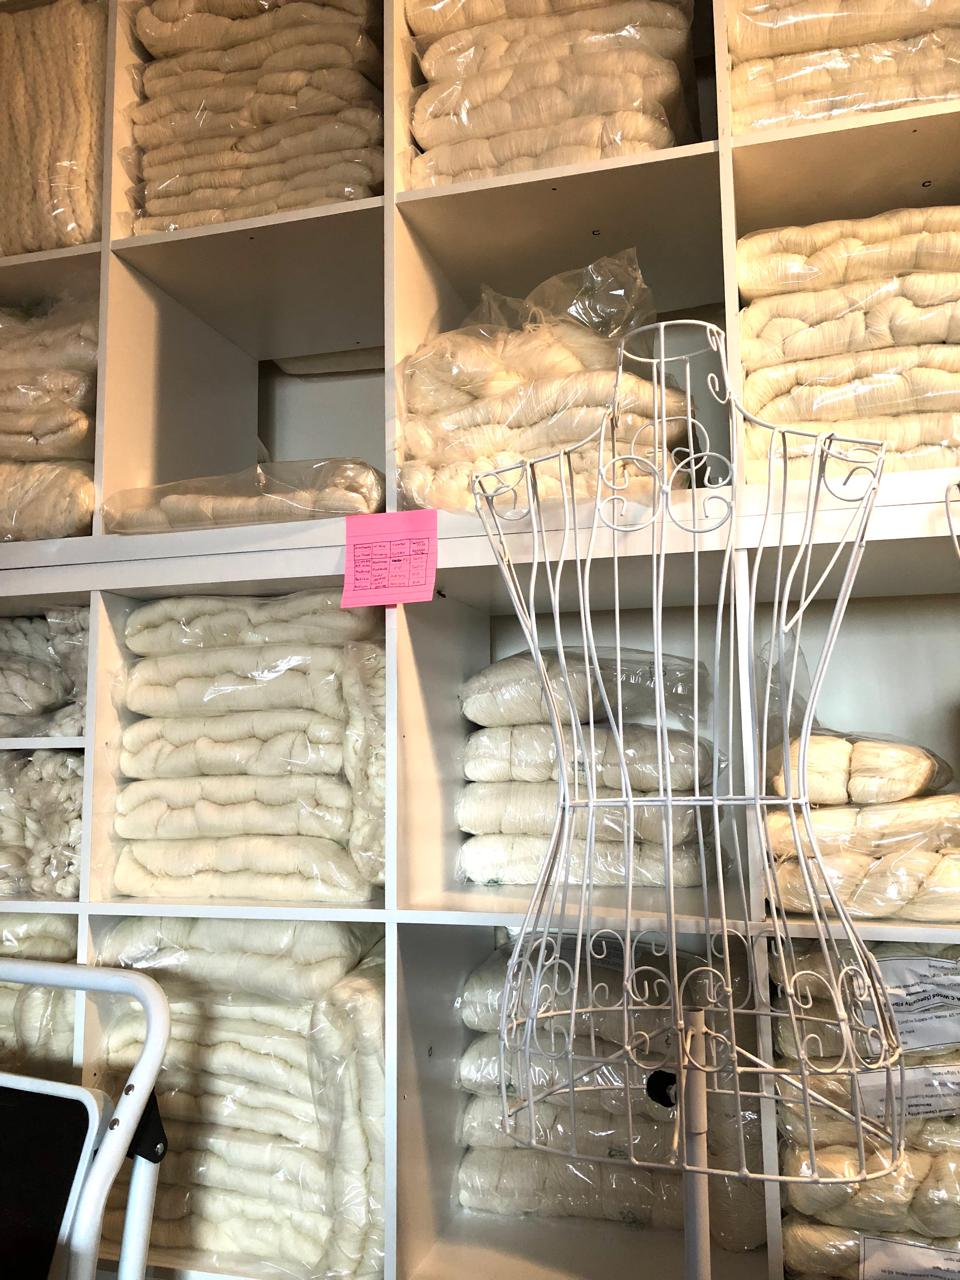 Shelves of un-dyed yarn and a metal dress form.